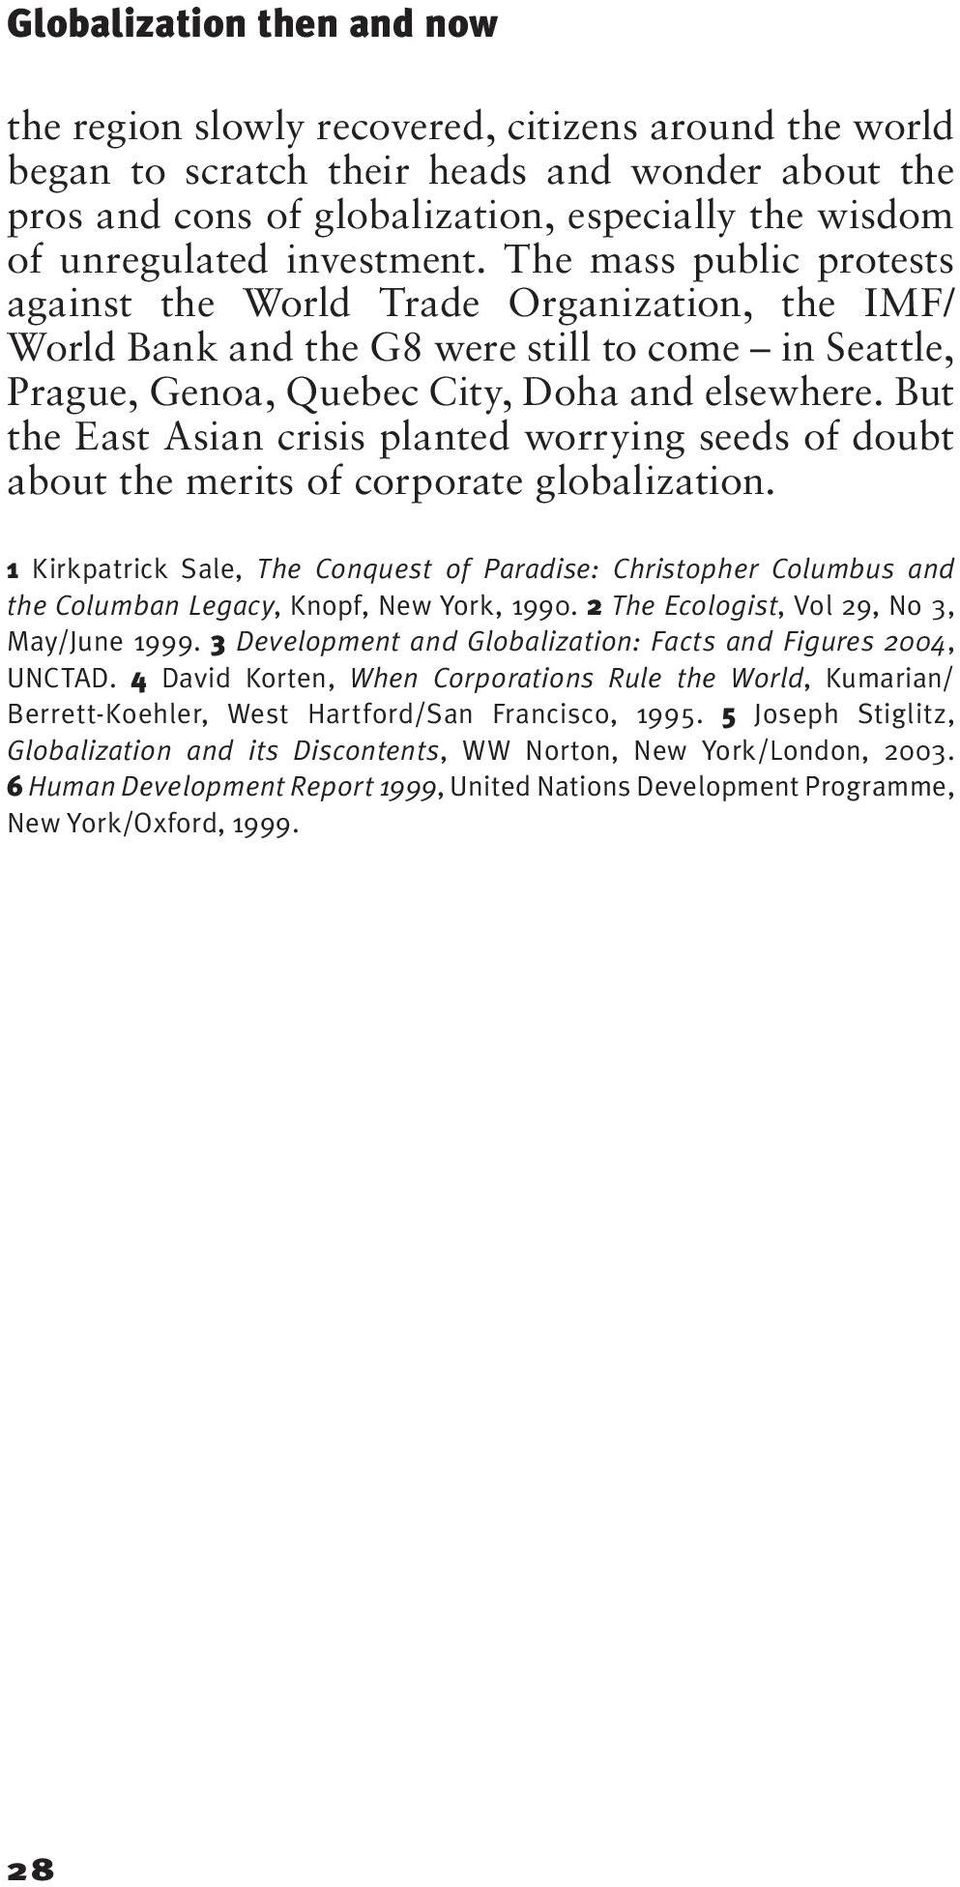 But the East Asian crisis planted worrying seeds of doubt about the merits of corporate globalization.